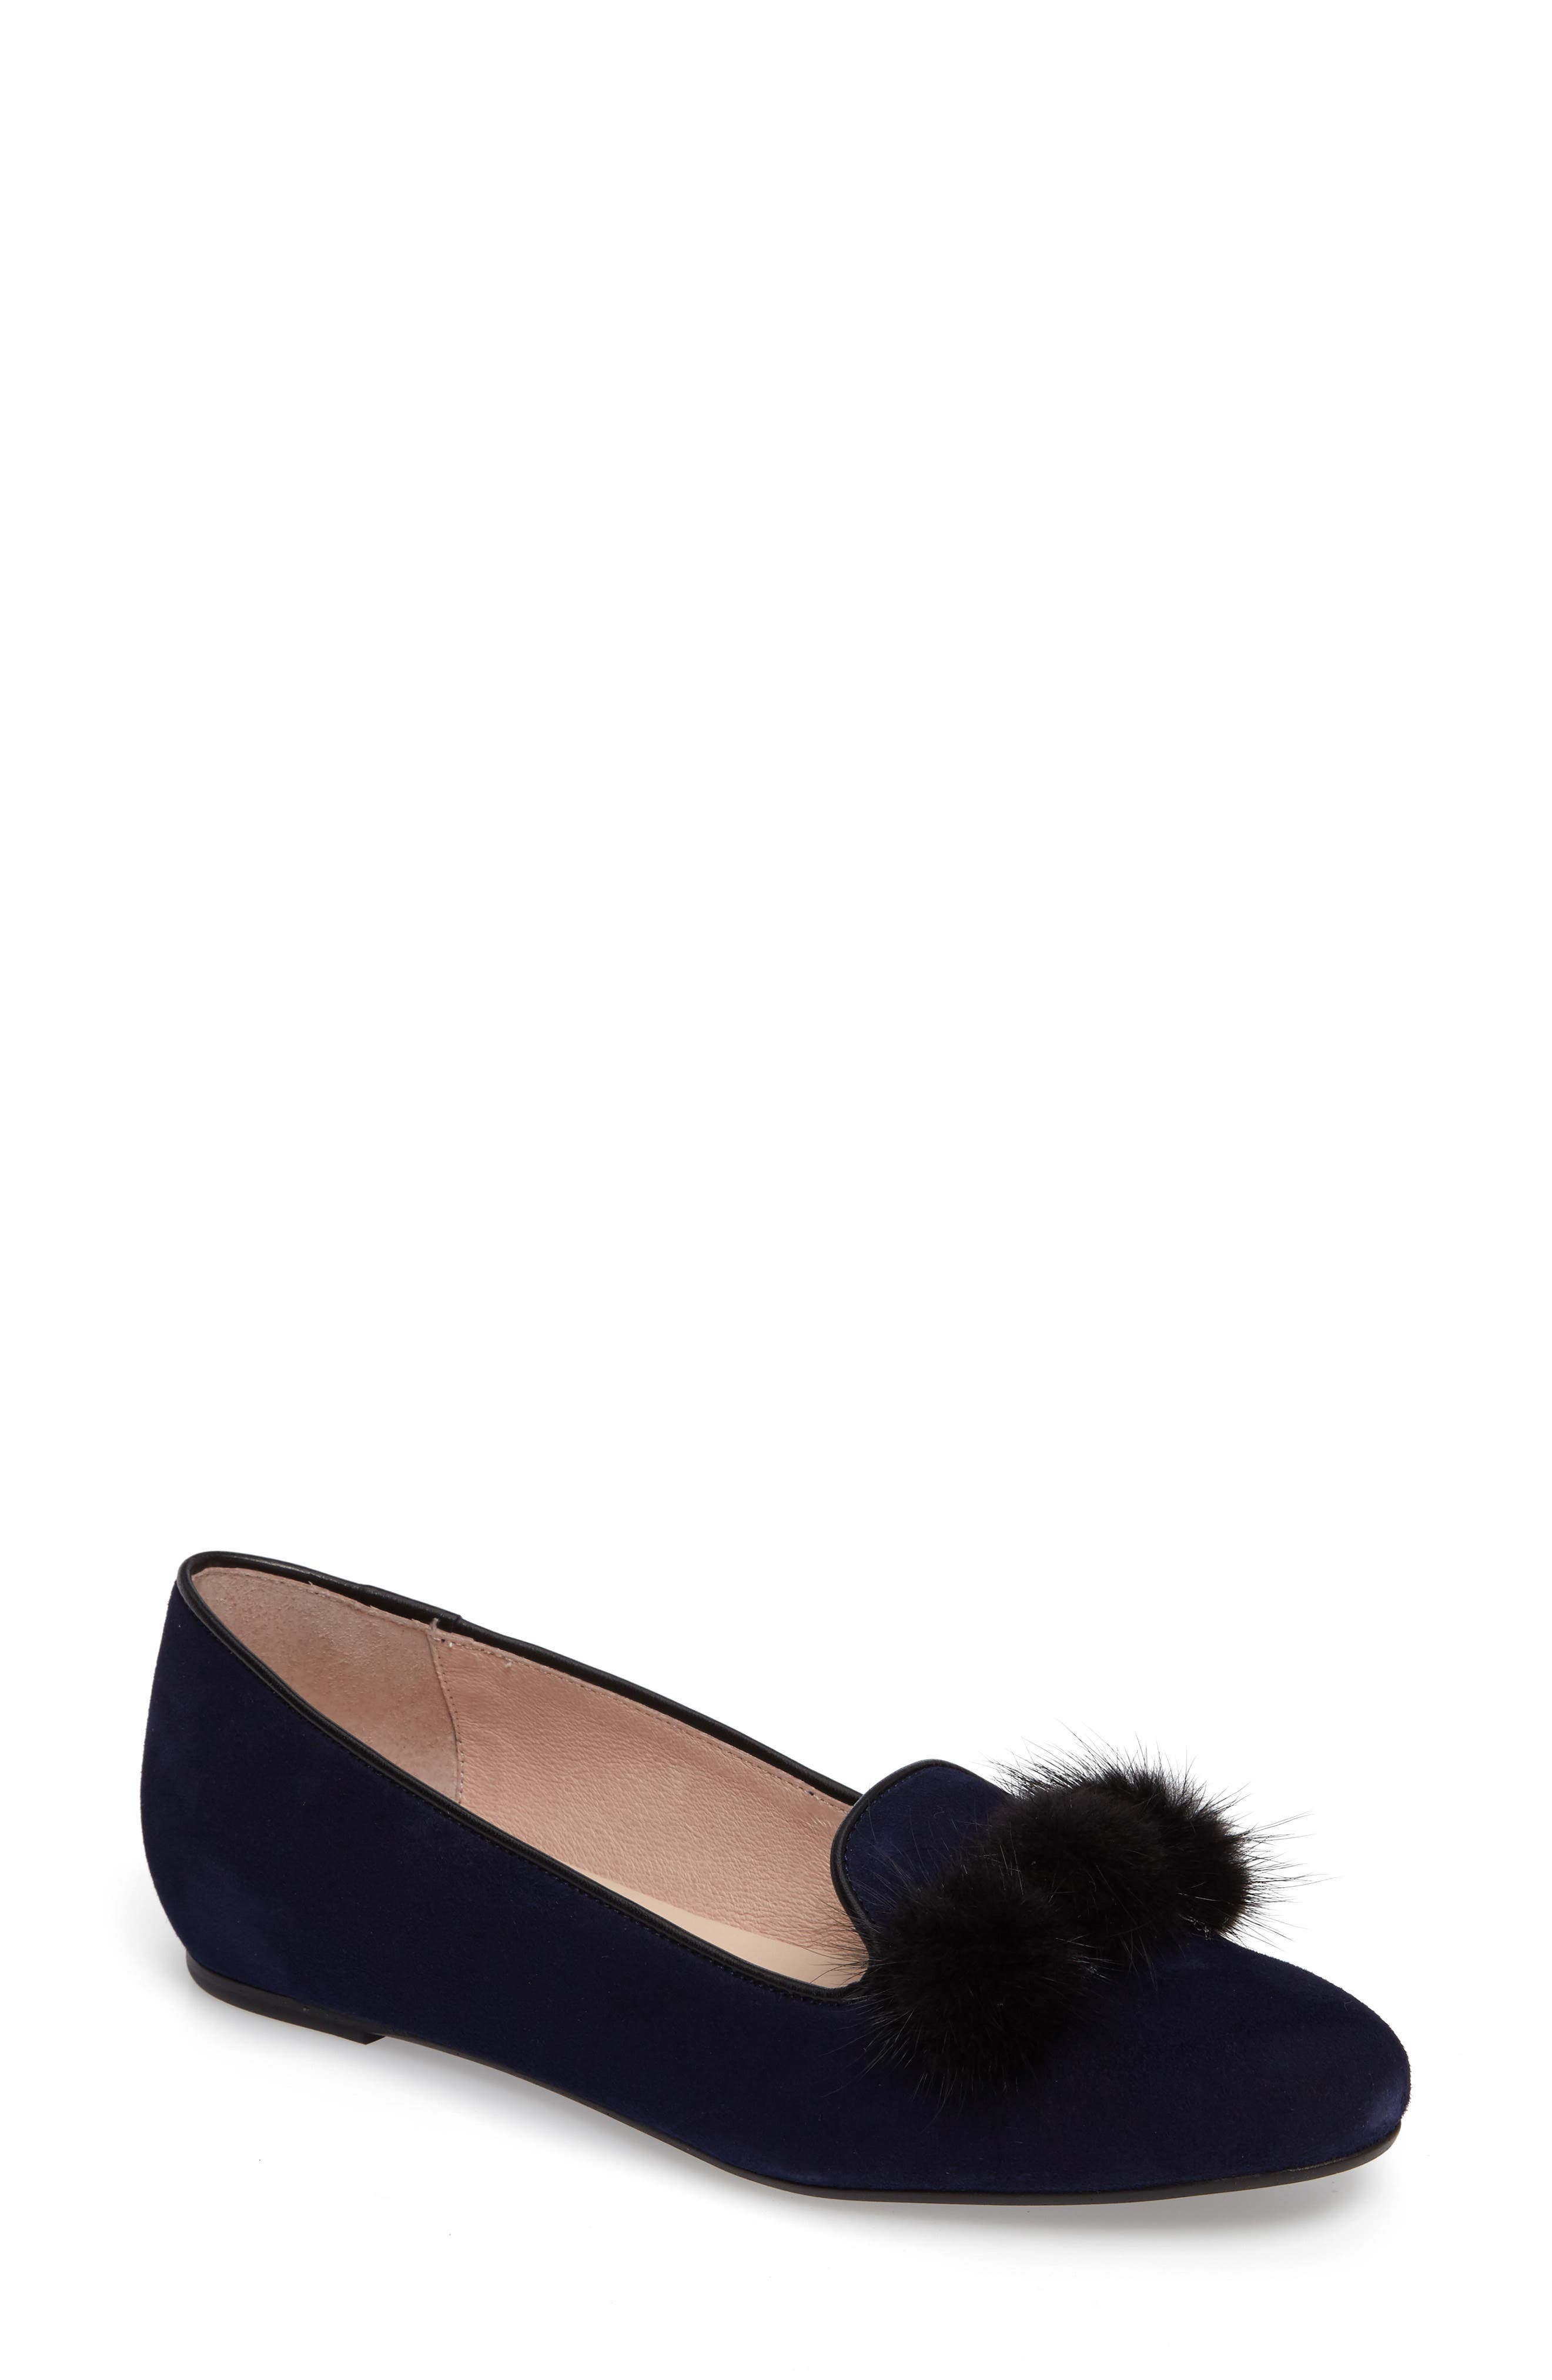 Main Image - patricia green Wallis Genuine Fur Pompom Loafer (Women)